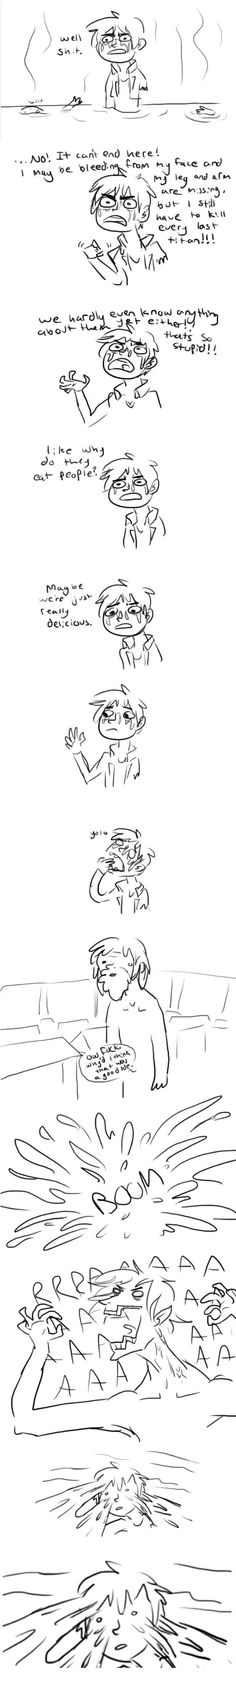 How Eren discovered his powers in the titan's stomach